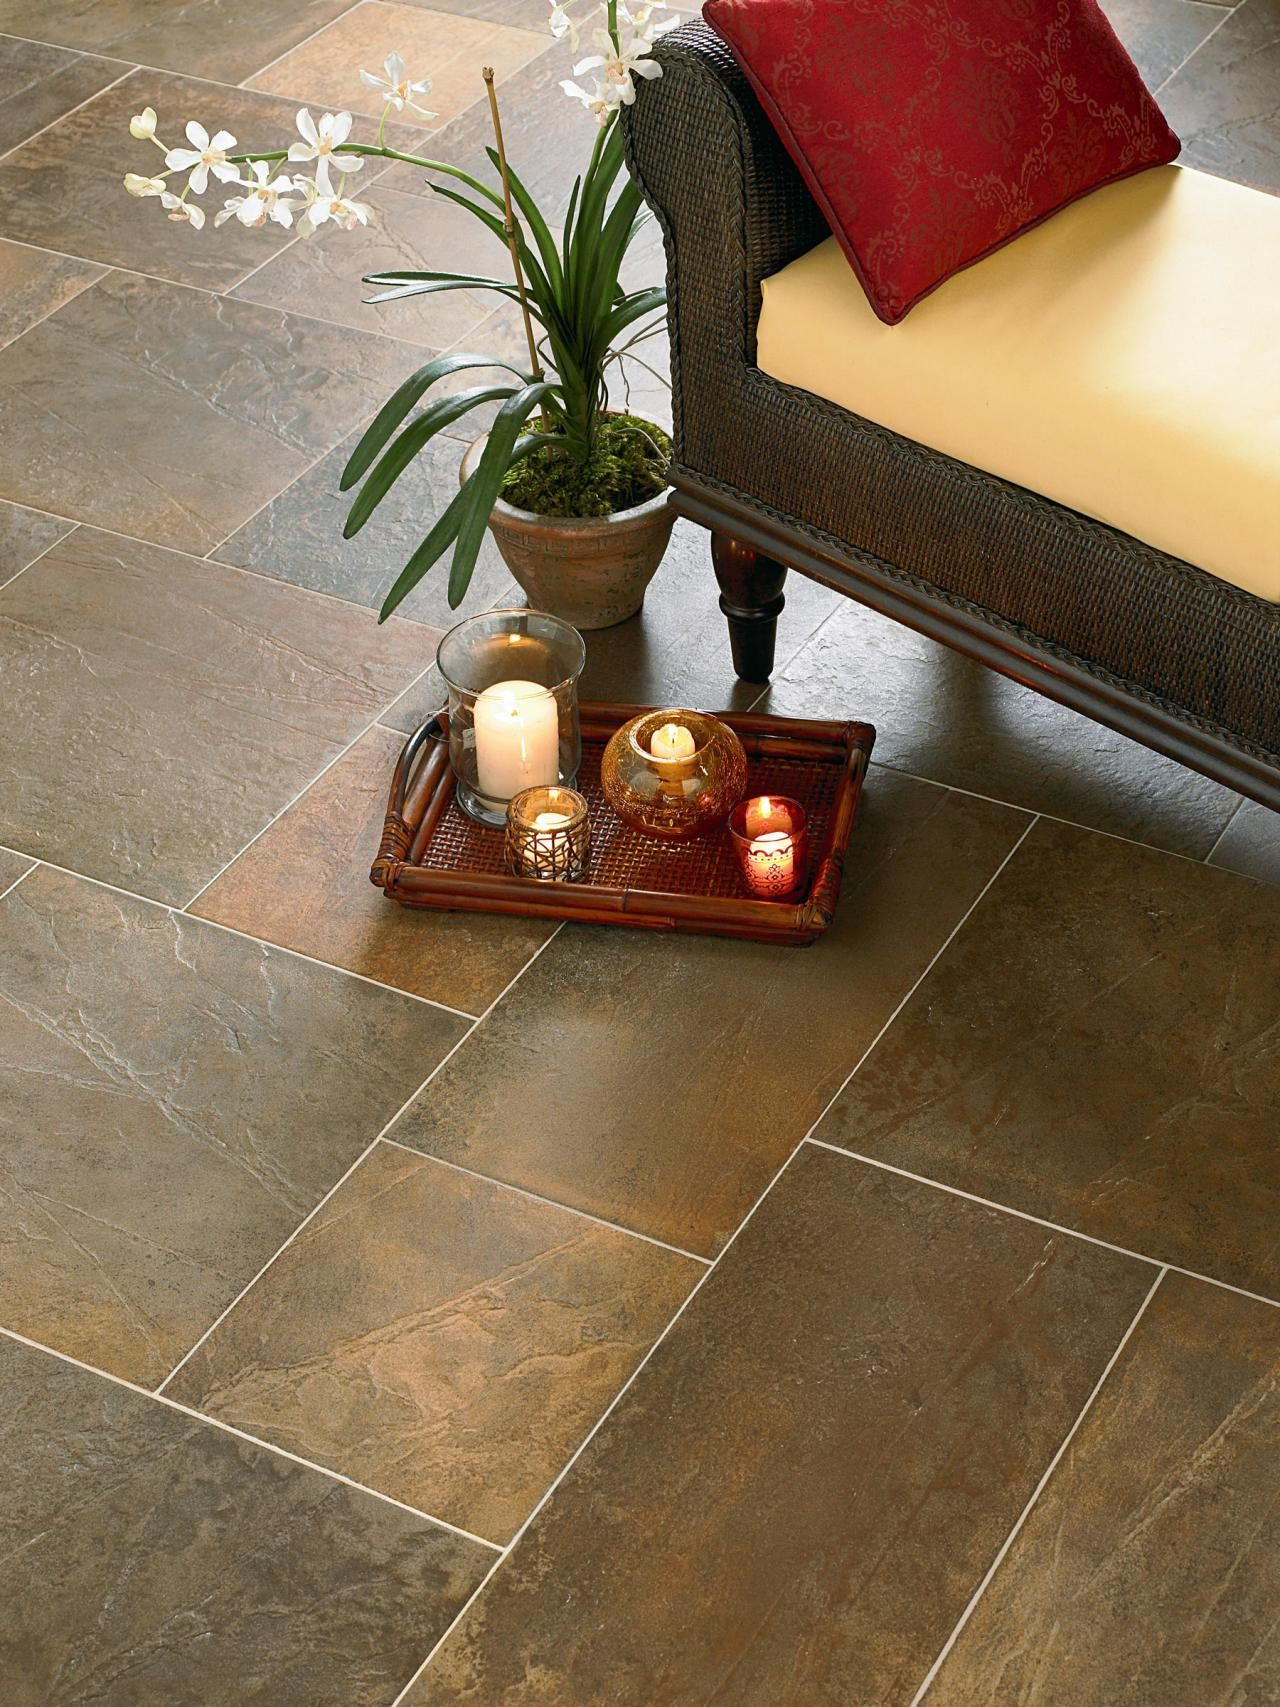 Tile flooring options flooring options hgtv and decorating stone like porcelain old world grotto with all the chip and moisture protection of hard wearing ceramic if the house is a new construction it crucial to dailygadgetfo Choice Image